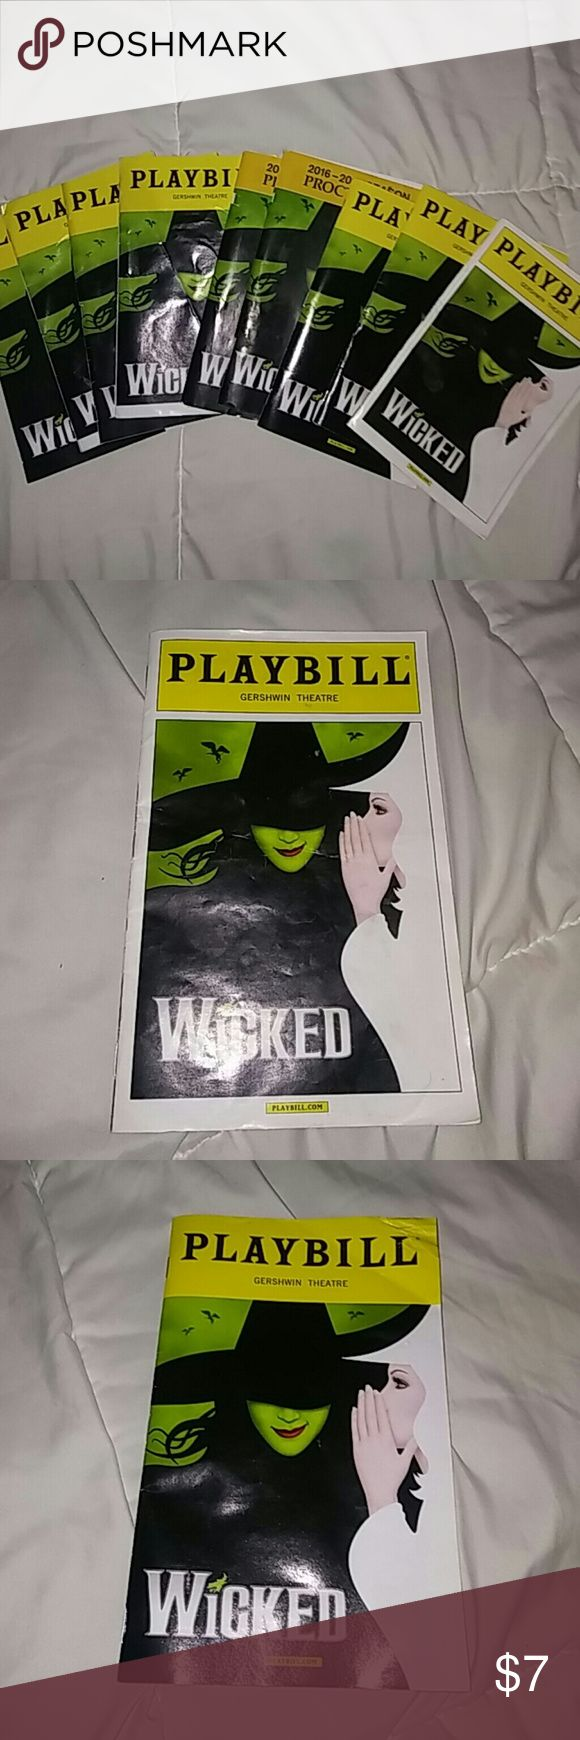 9 Wicked Playbiils 9 great condition Wicked The Musical Playbills! 7 Playbill are from the Broadway Production and 2 are from the National touring production at Proctors Theatre. Reasonable offers accepted! Can be bundled with other wicked items!💚💚 Wicked the Musical Other